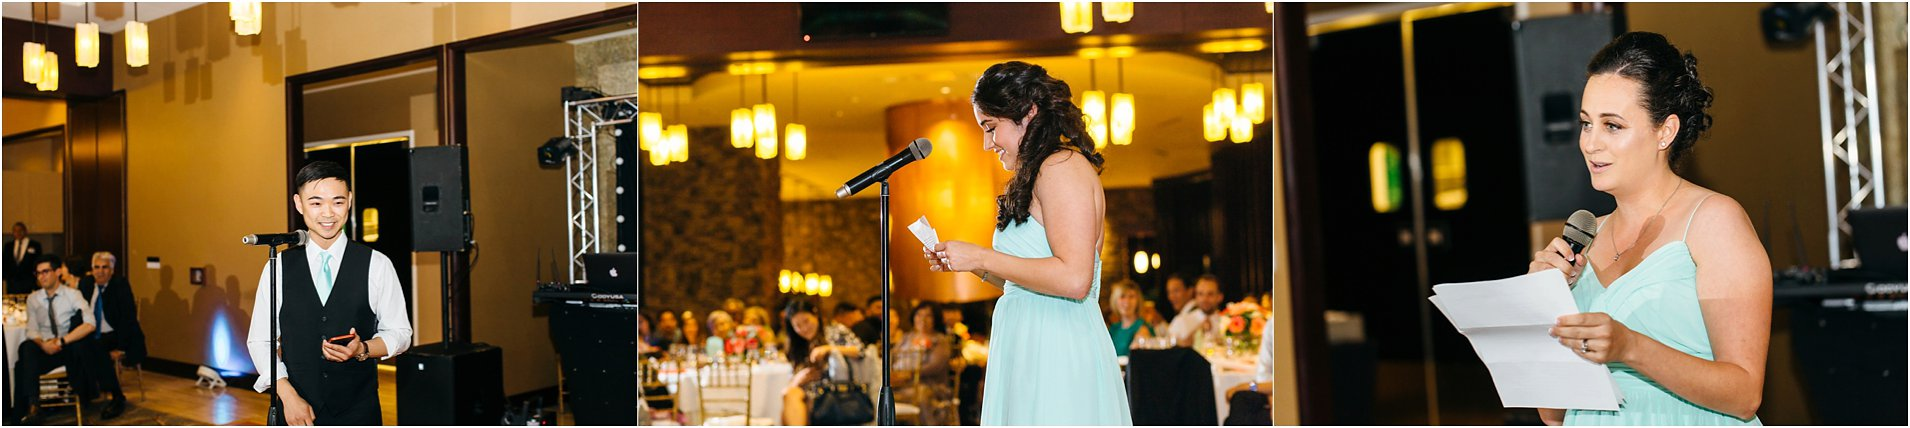 speeches and toasts by maid of honor and best man